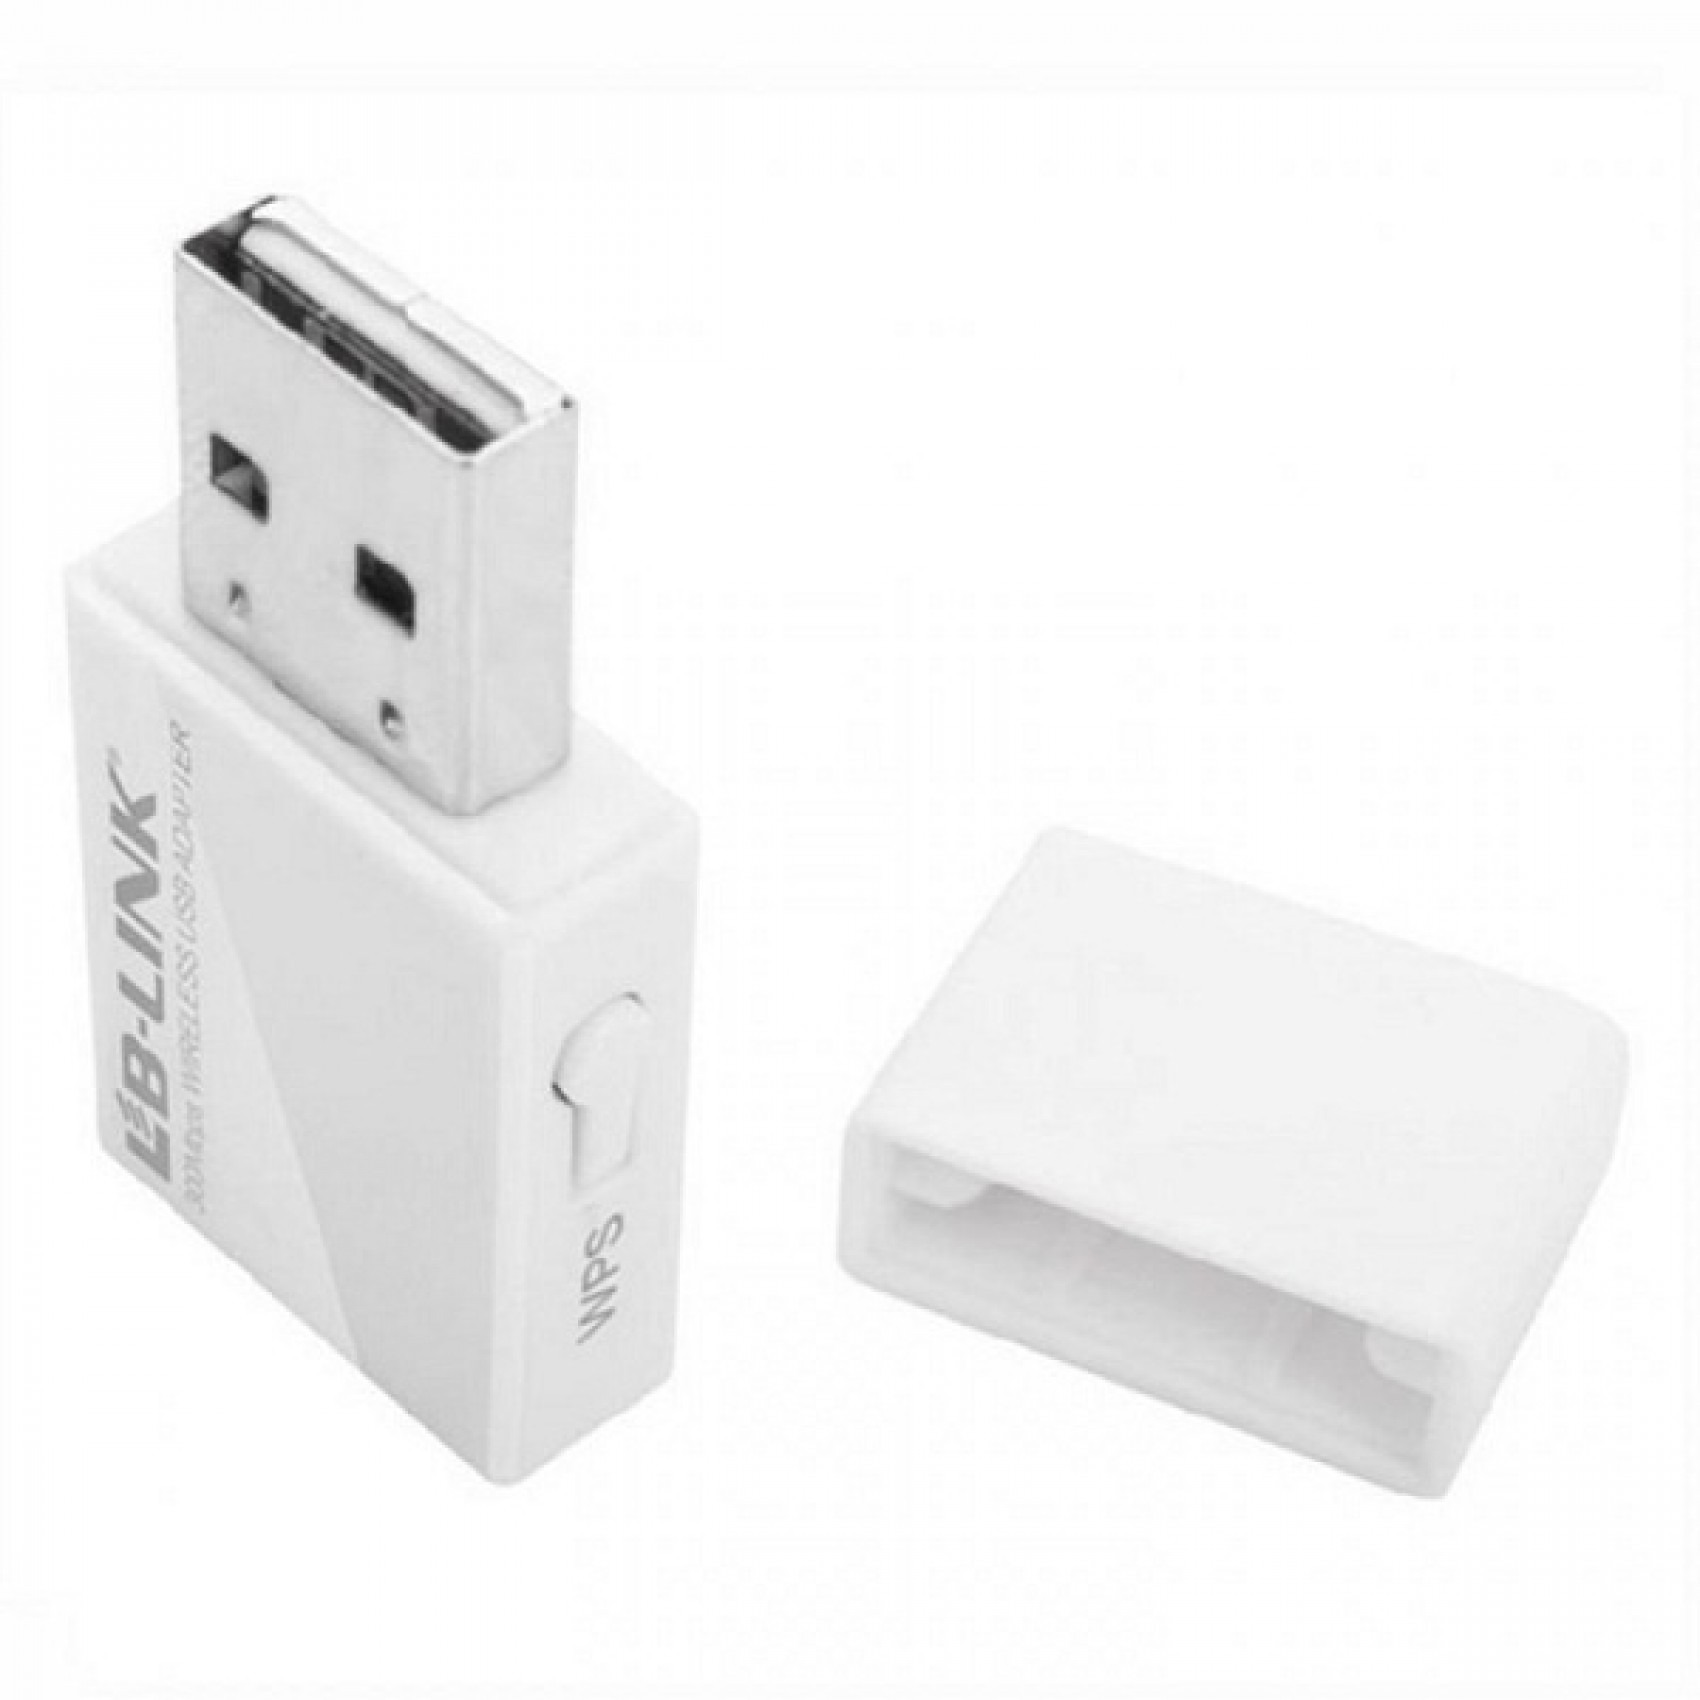 USB WiFi b/g/n mini dongle (BL-WN2210)